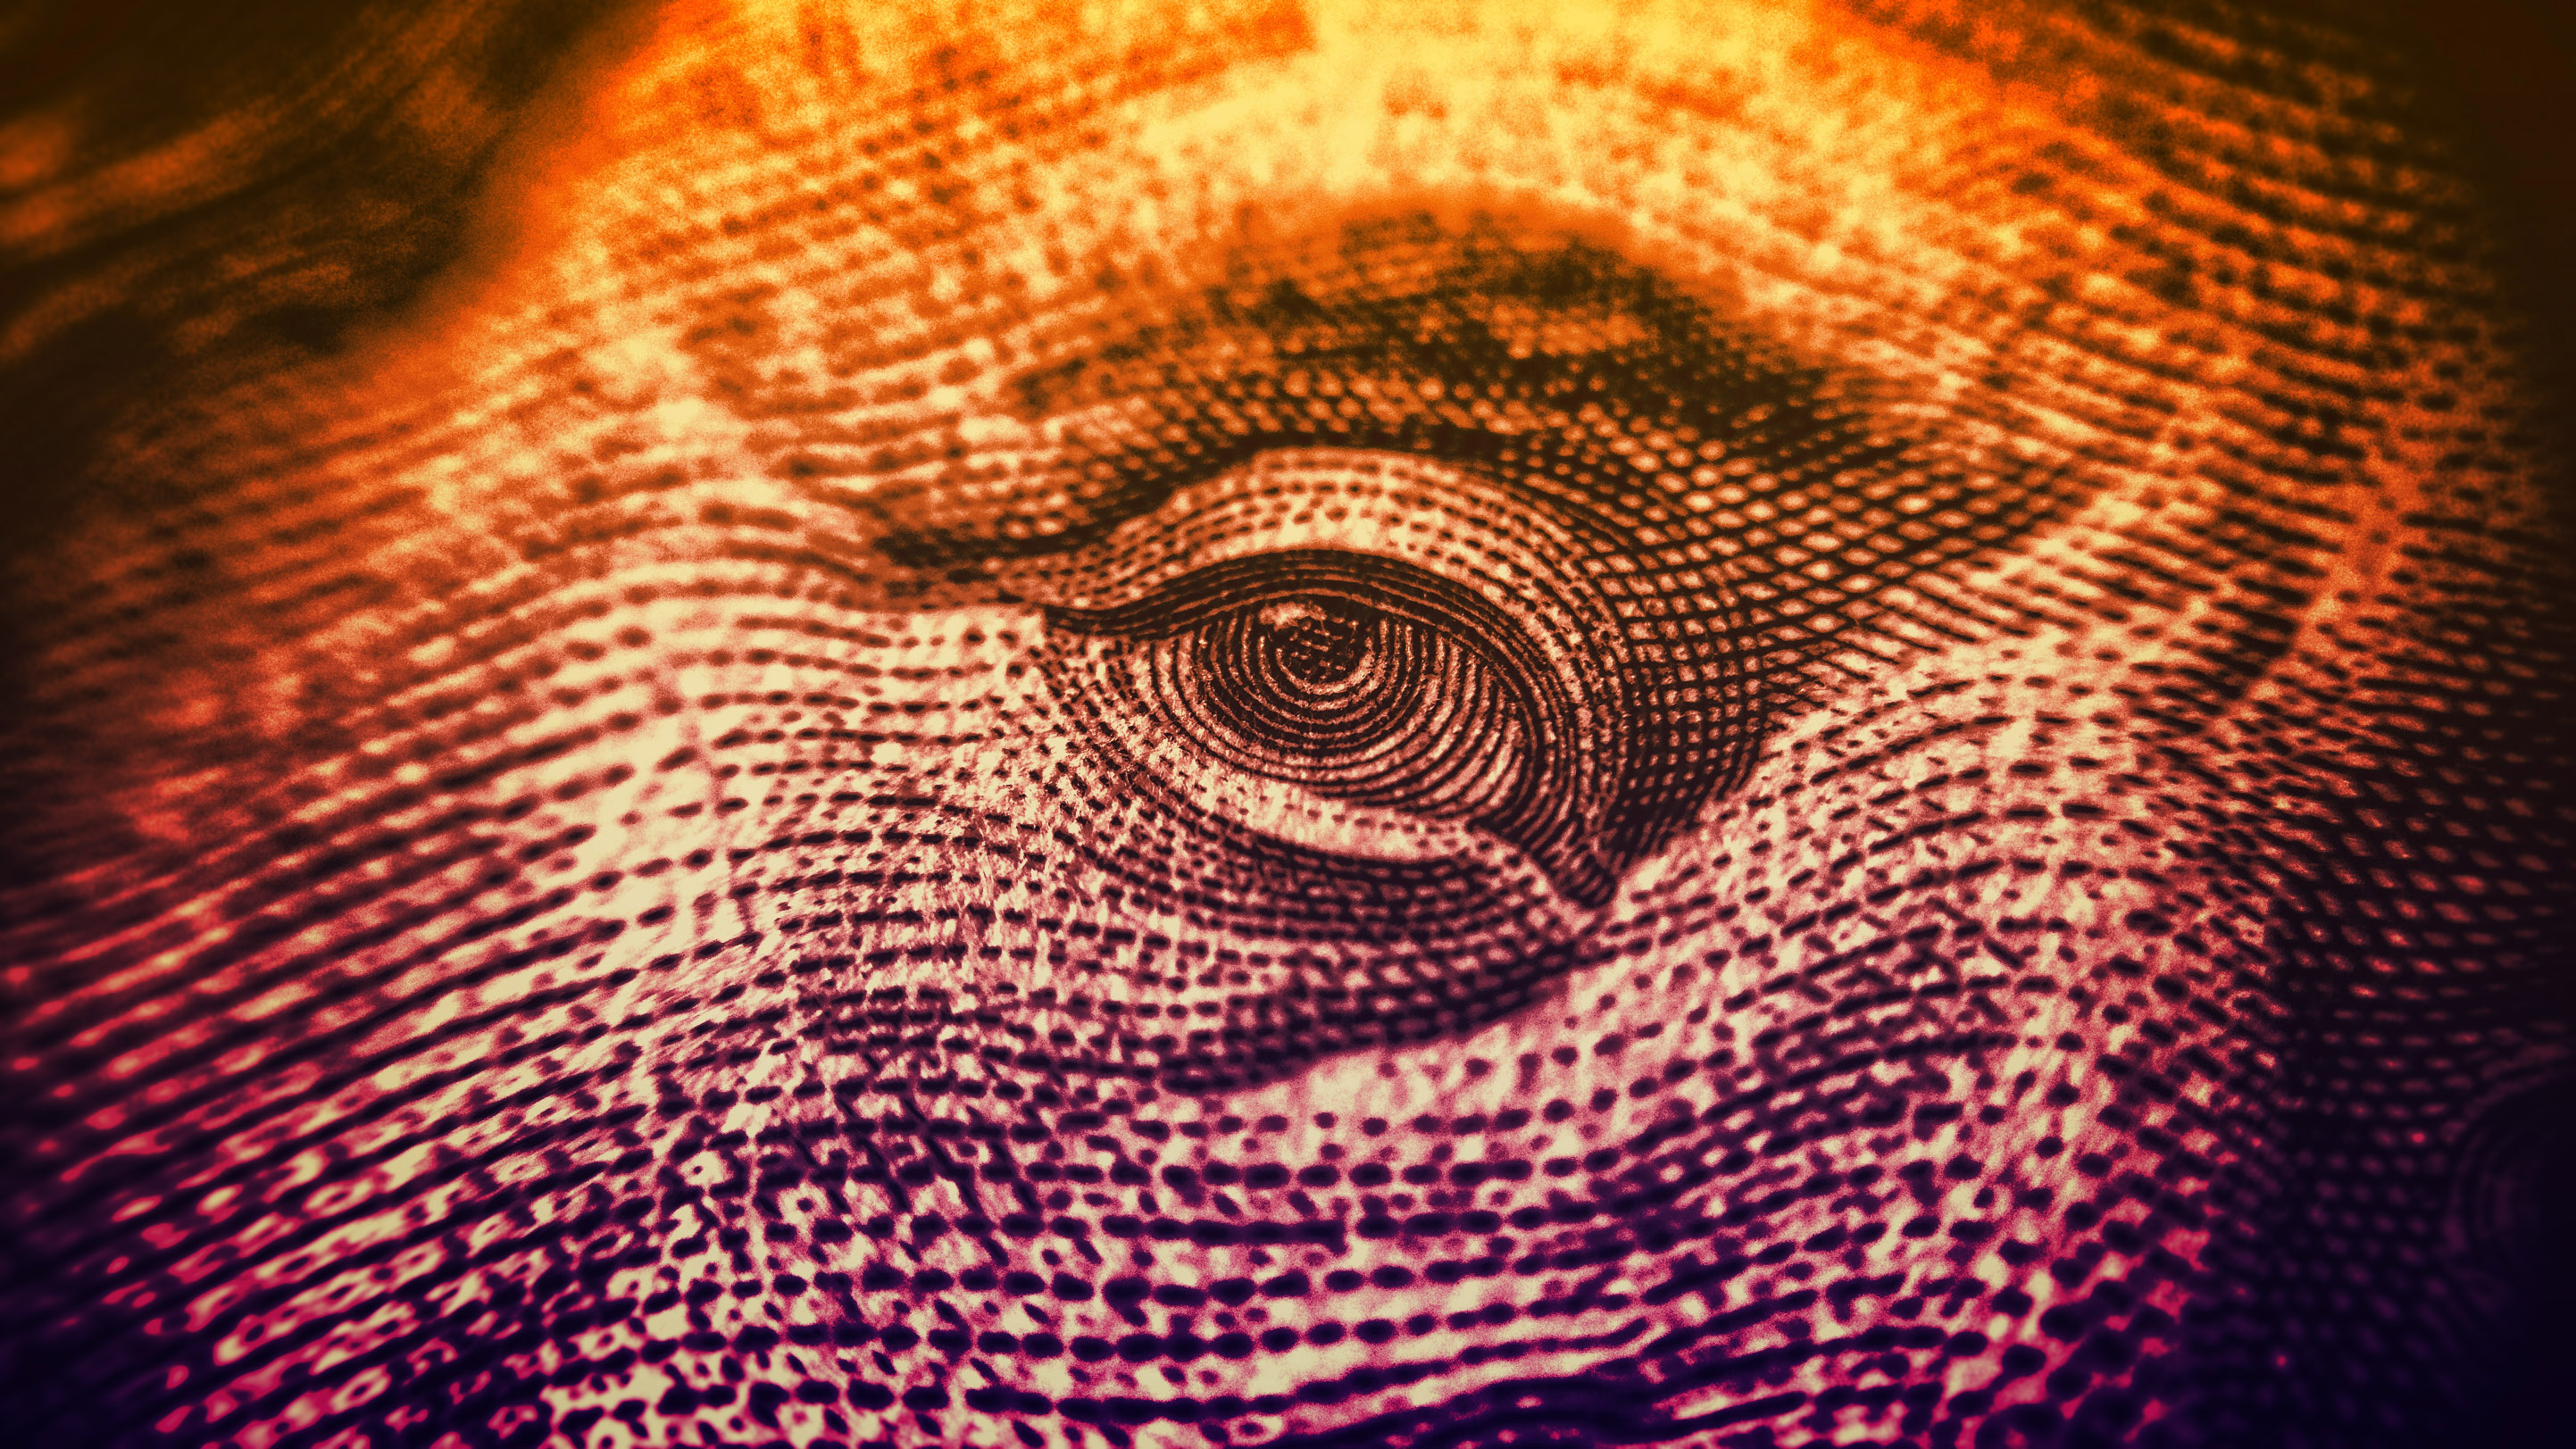 Eyes on The Dollar - Money and Finance - Colorized, Accounting, Monetary, Paying, Pay, HQ Photo